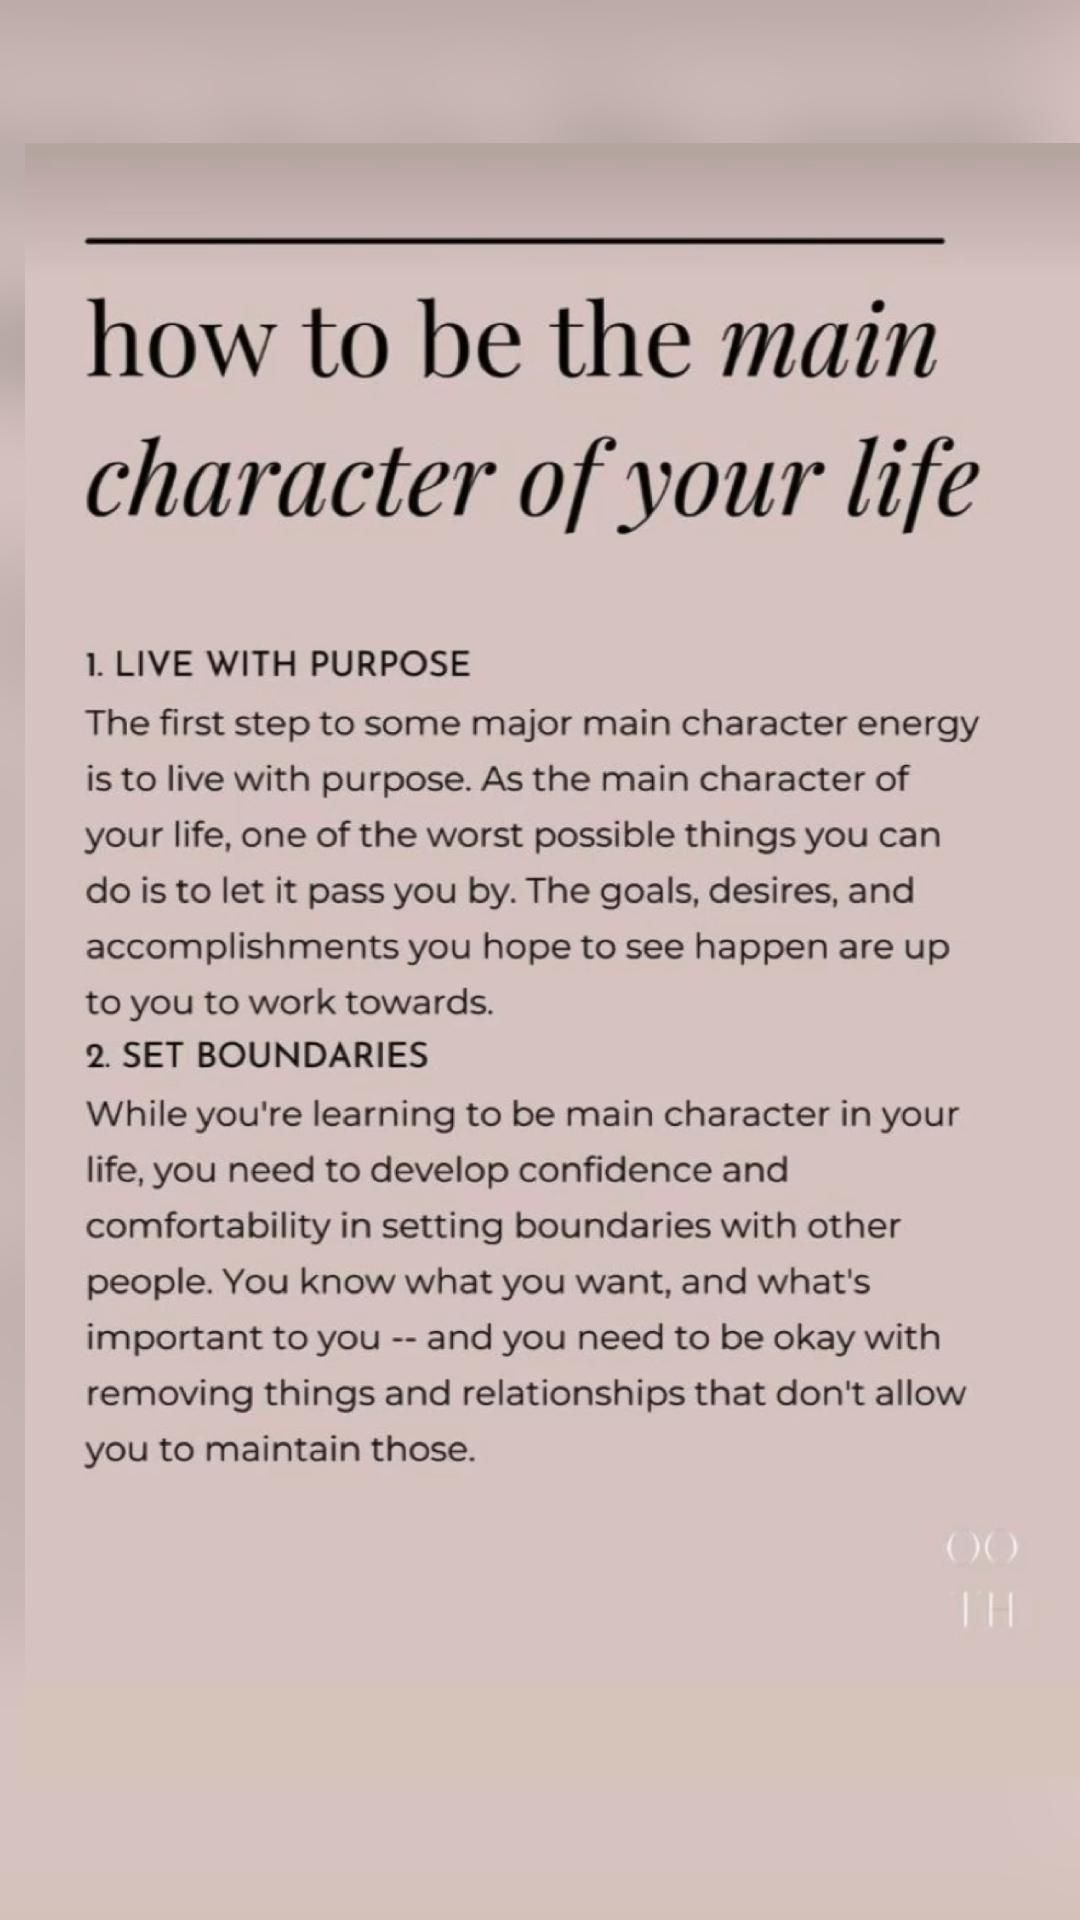 how to be the main character of your life